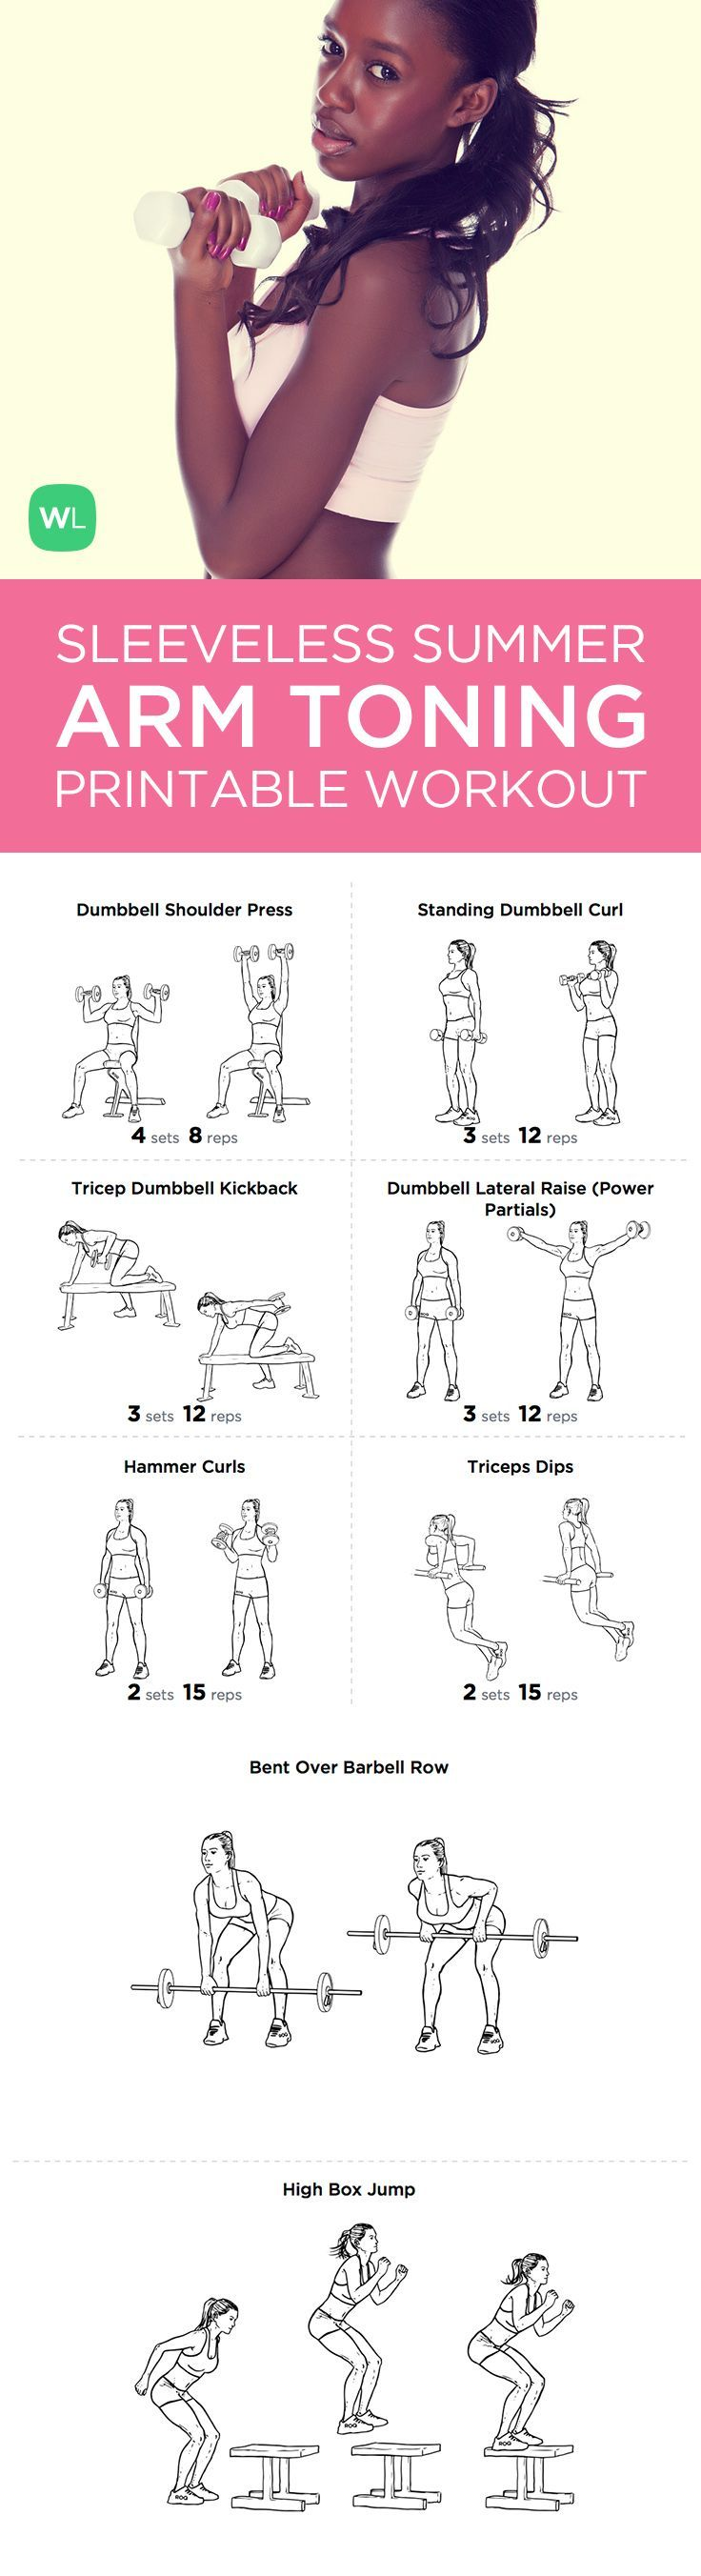 weight loss and toning workout plan